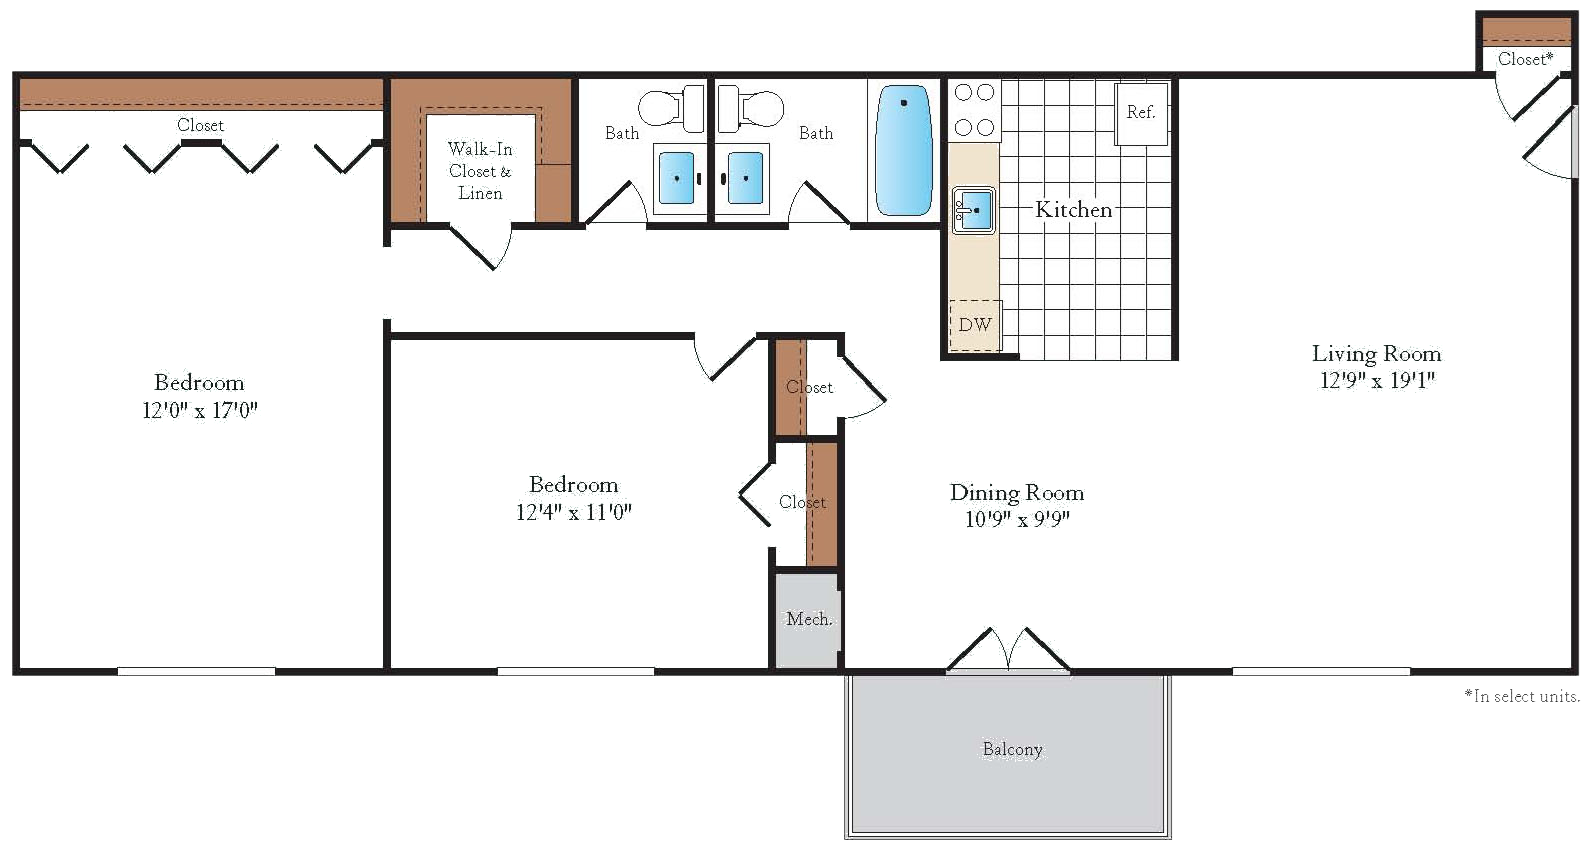 Floorplan at Sussex Square